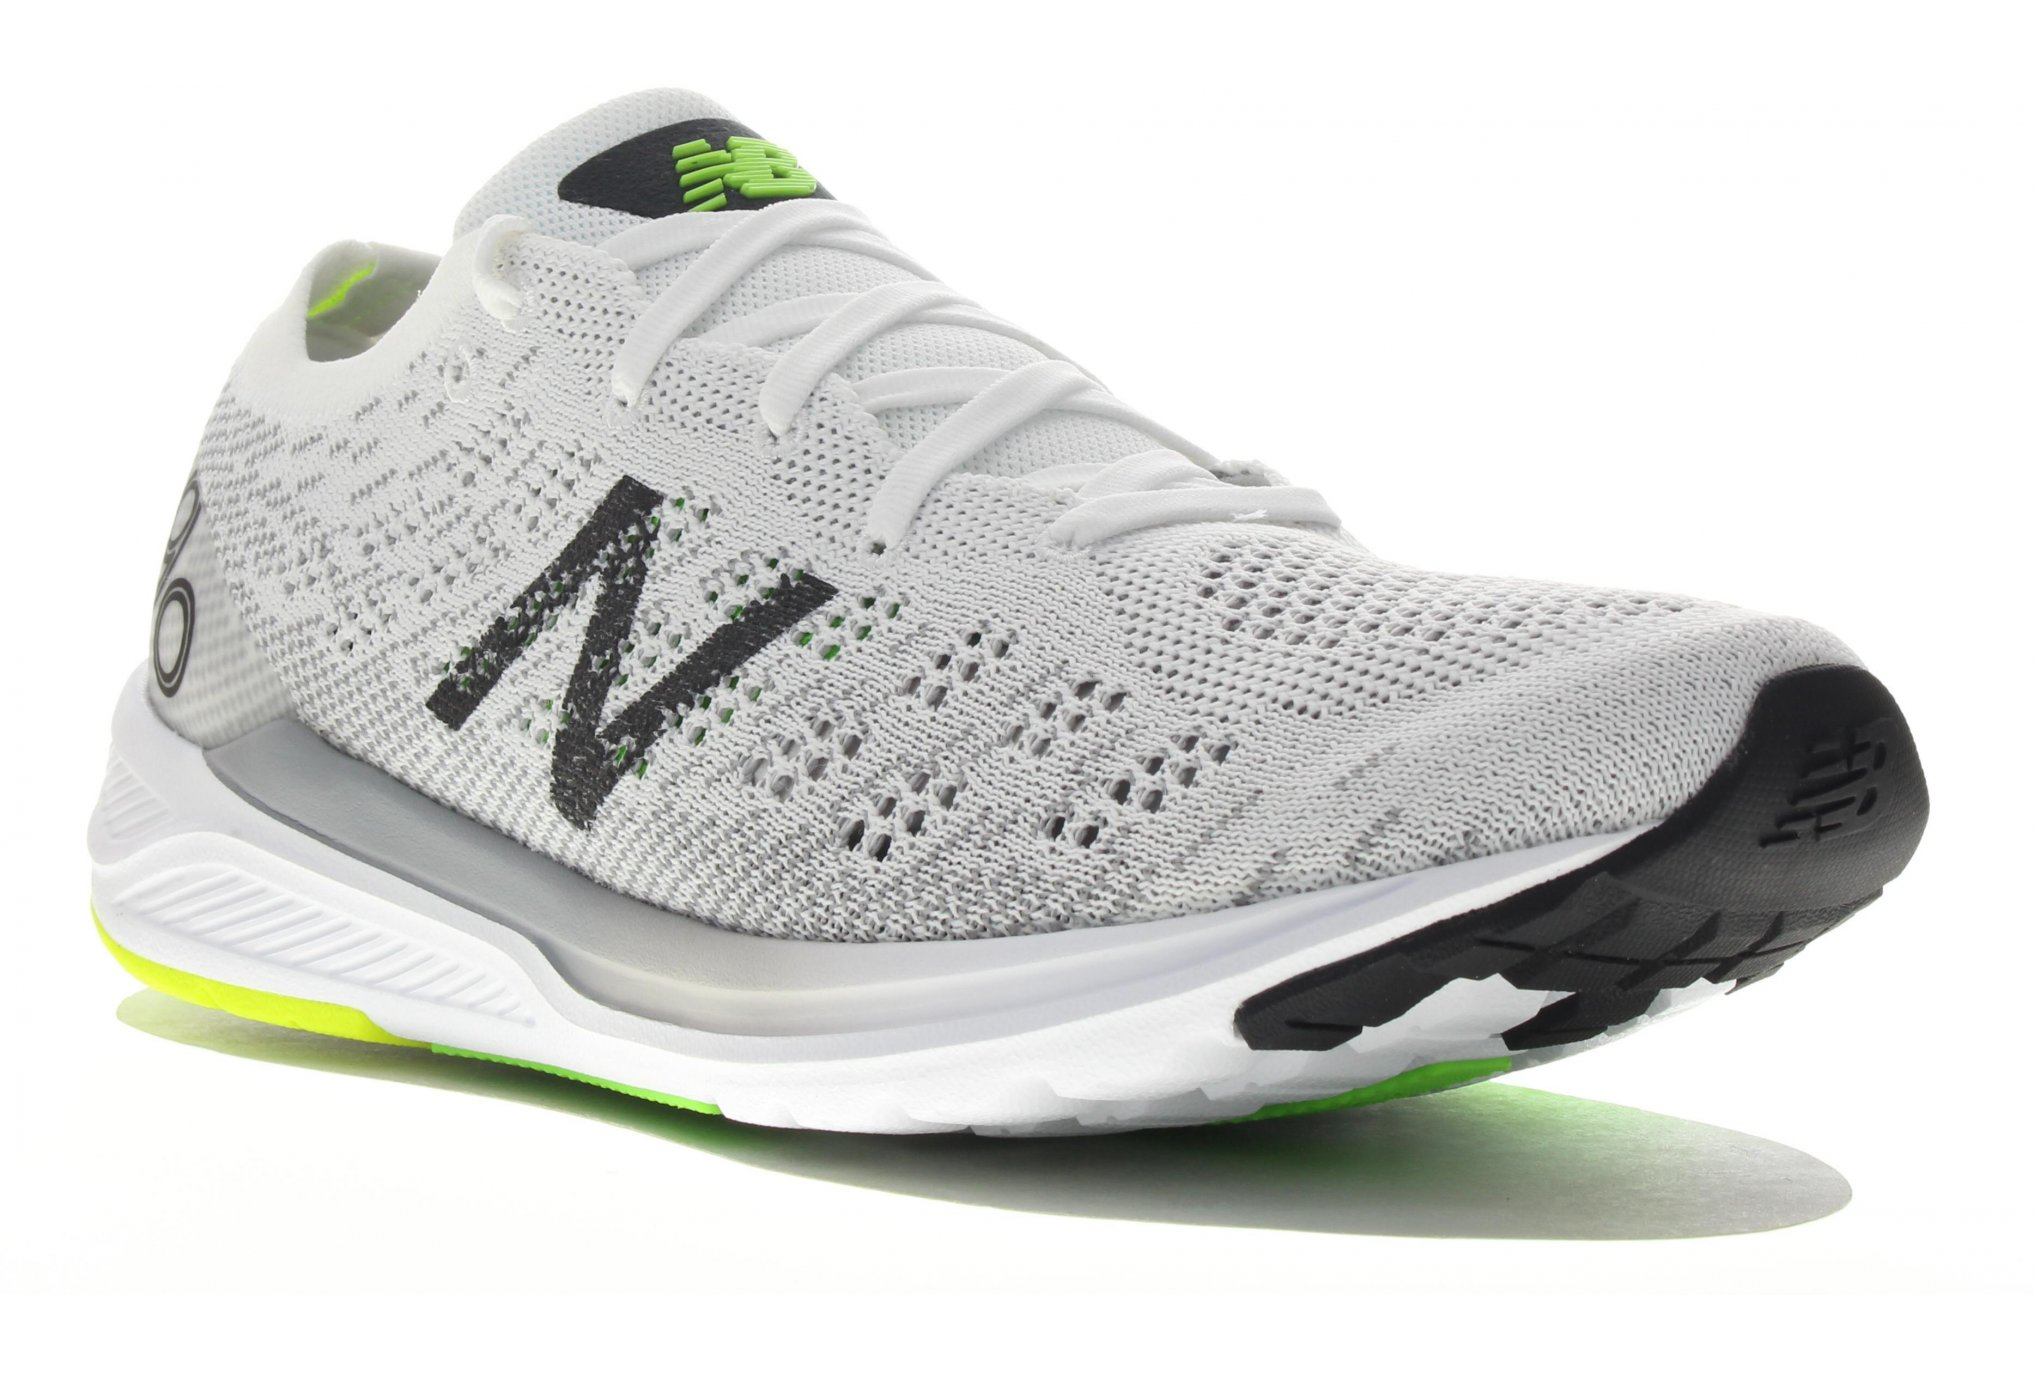 New Balance M 890 V7 - D Chaussures homme